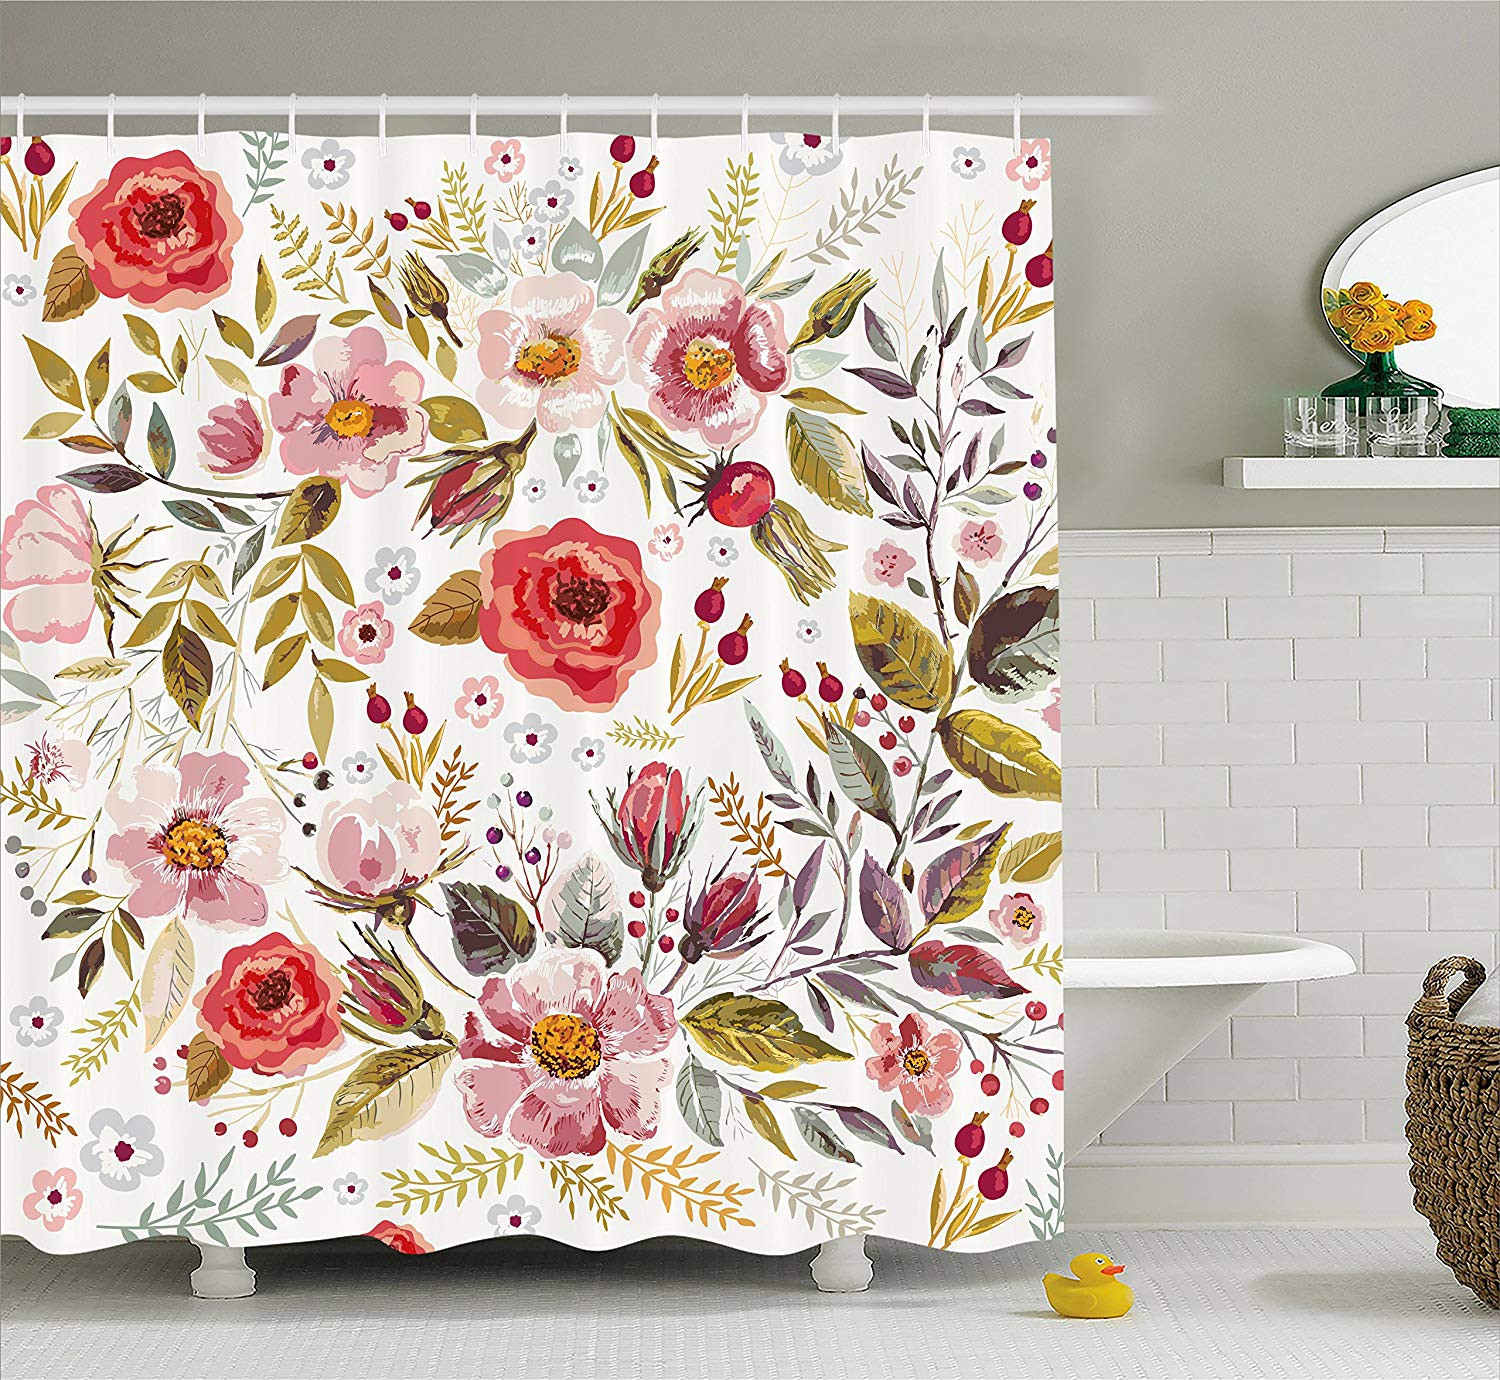 Amazon Ambesonne Vintage Shower Curtain by Floral Theme Hand Drawn Romantic Flowers and Leaves Illustration Fabric Bathroom Decor Set with Hooks